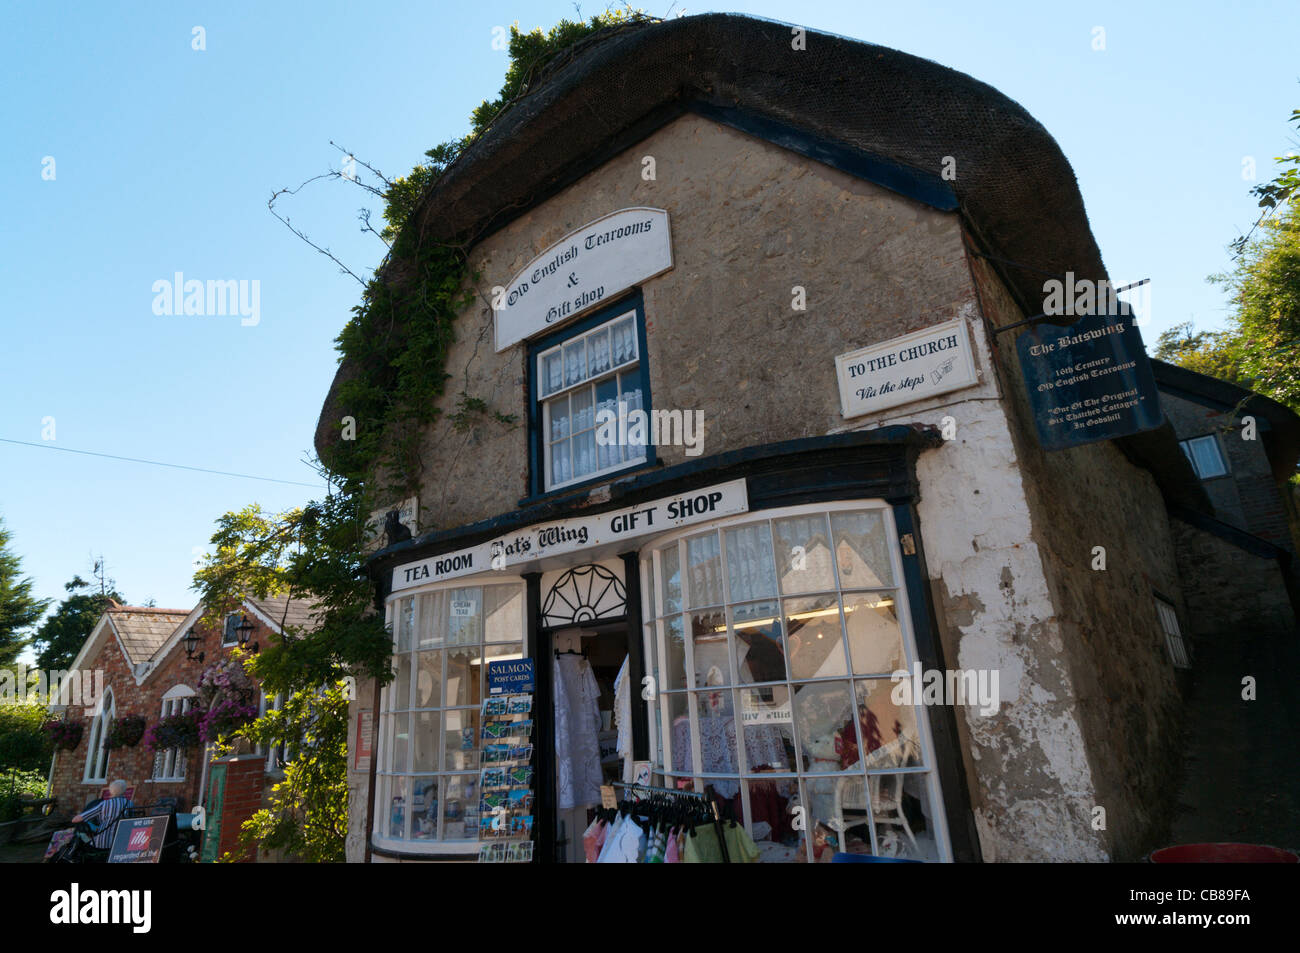 The Bat's Wing tearooms and gift shop in a 17th century cottage in Godshill on the Isle of Wight Stock Photo